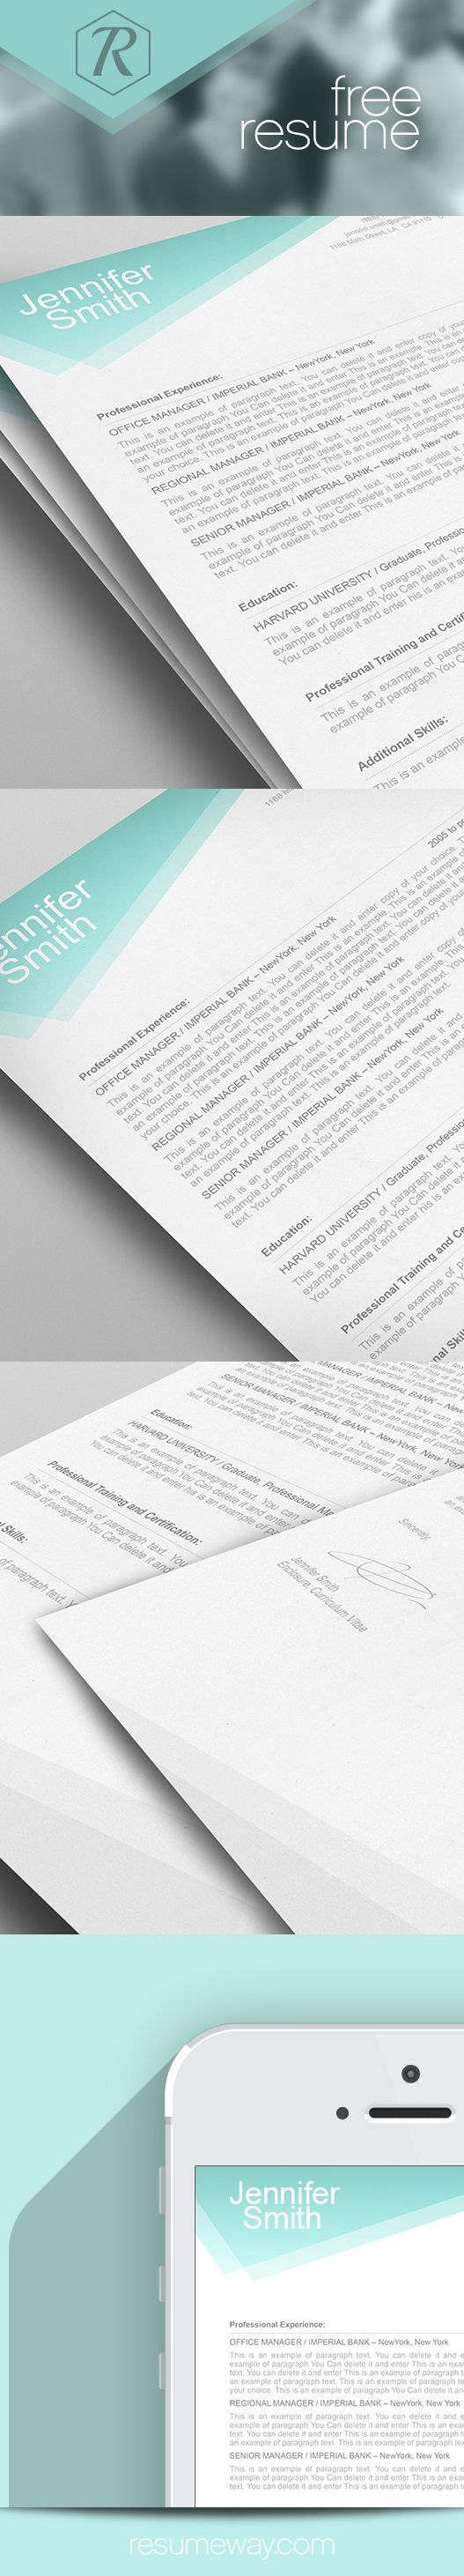 best images about resume creative resume resume template 1100020 premium line of resume cover letter templates edit